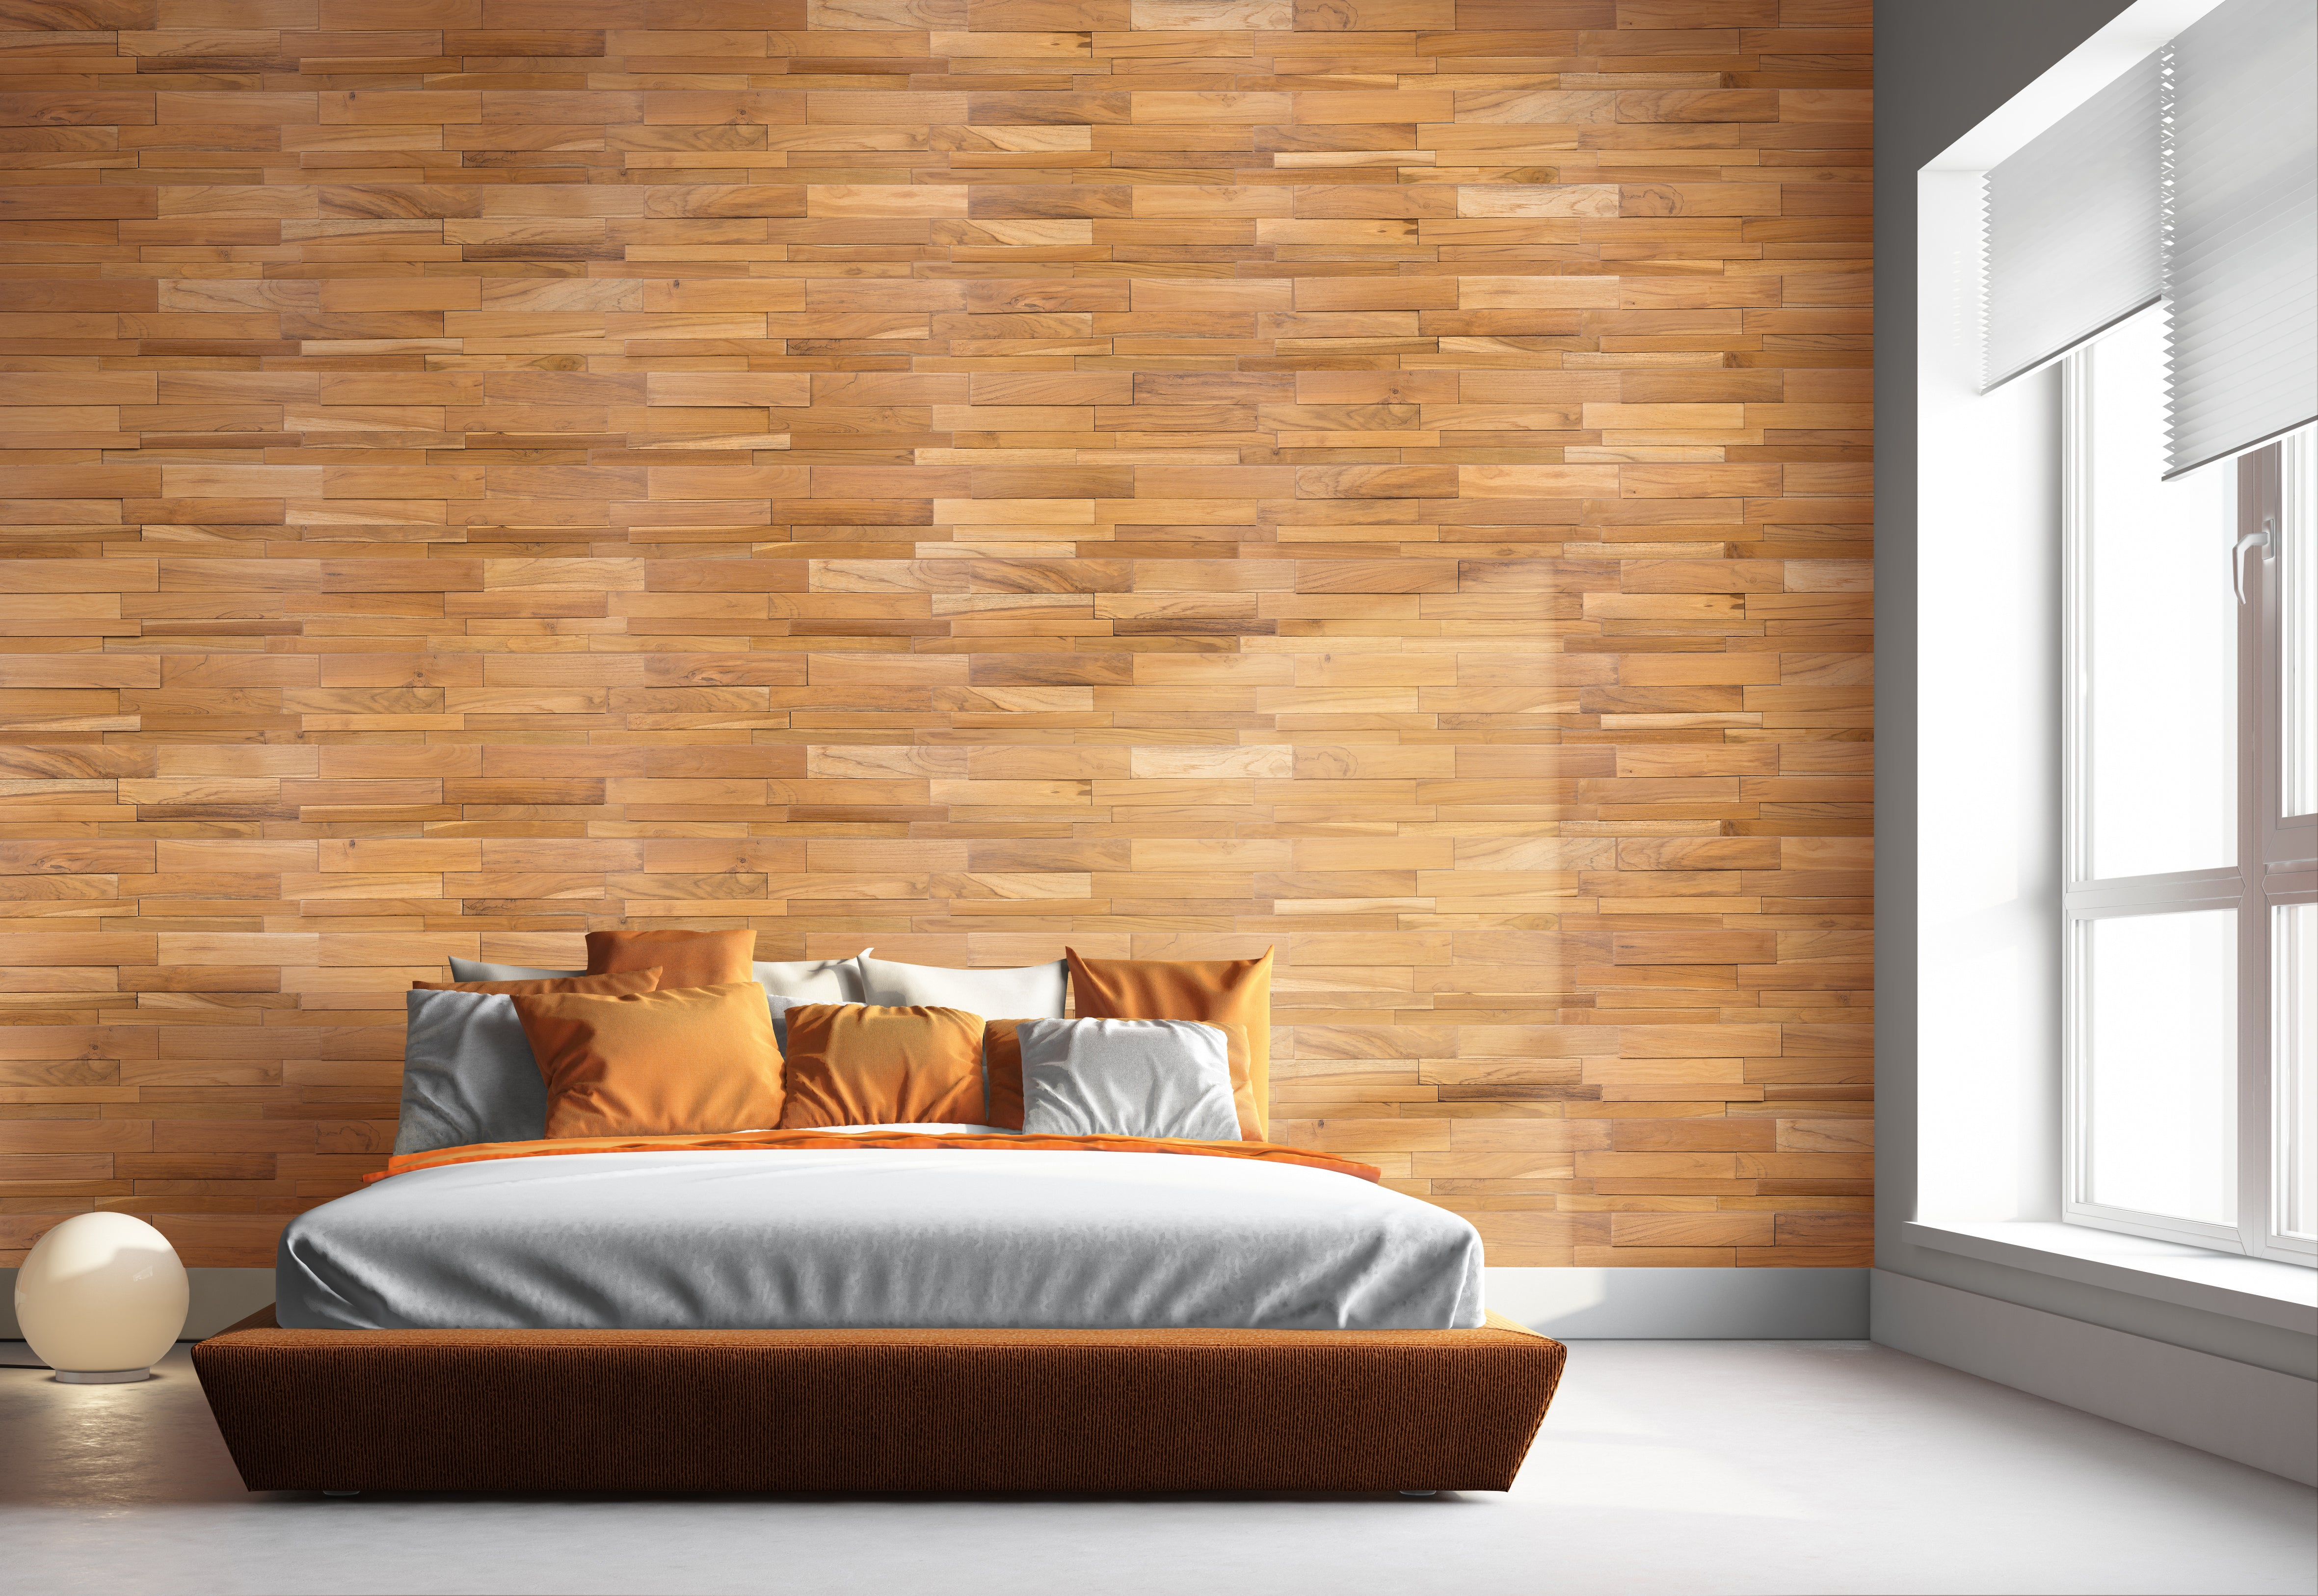 Indonesian teak linear wood wall tile smooth natural finish